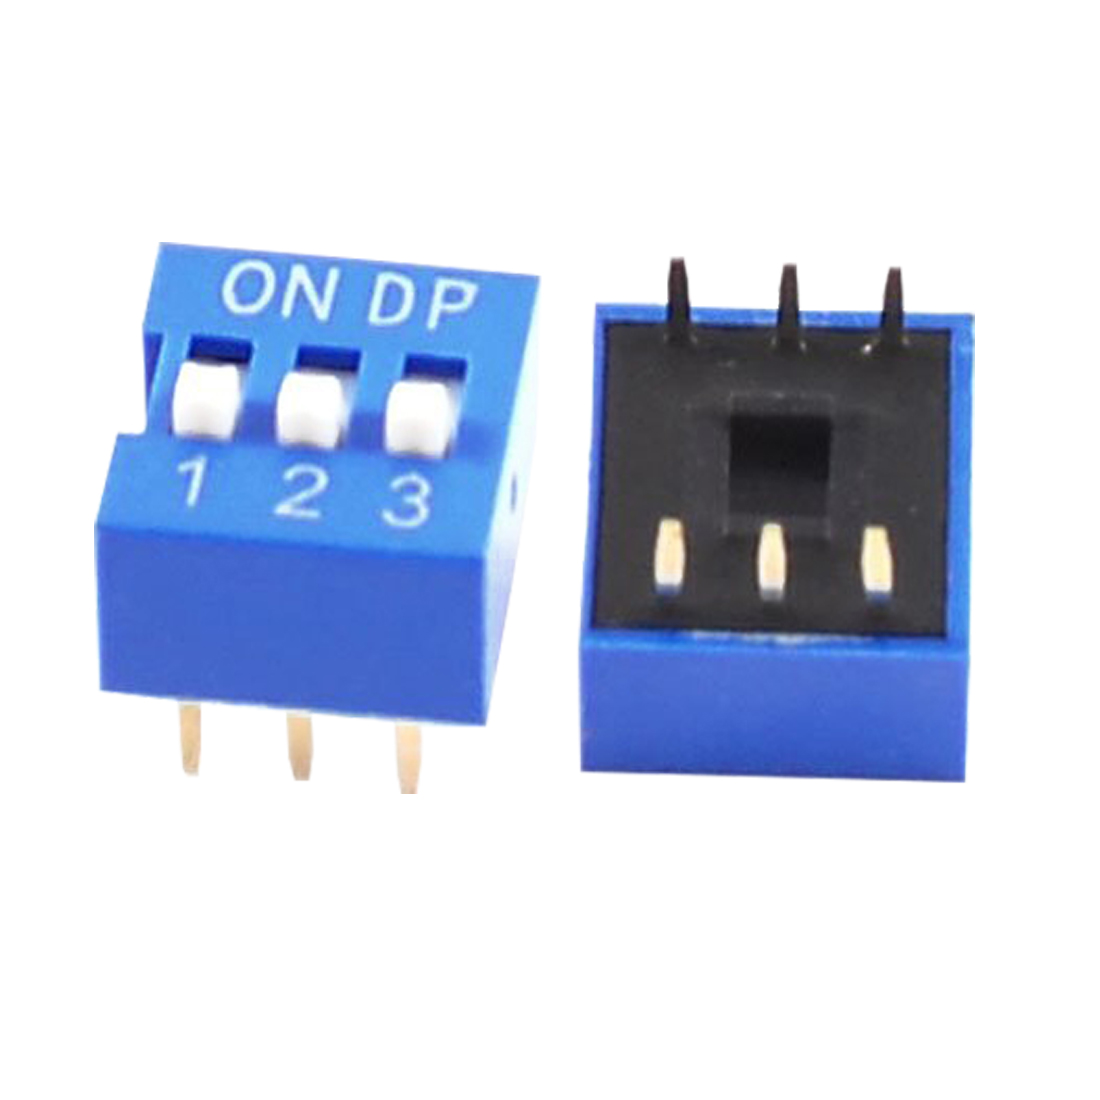 WSFS Hot 10 Pcs Blue Double Row 6 Pin 3 Positions 2.54mm Pitch DIP Switches<br><br>Aliexpress